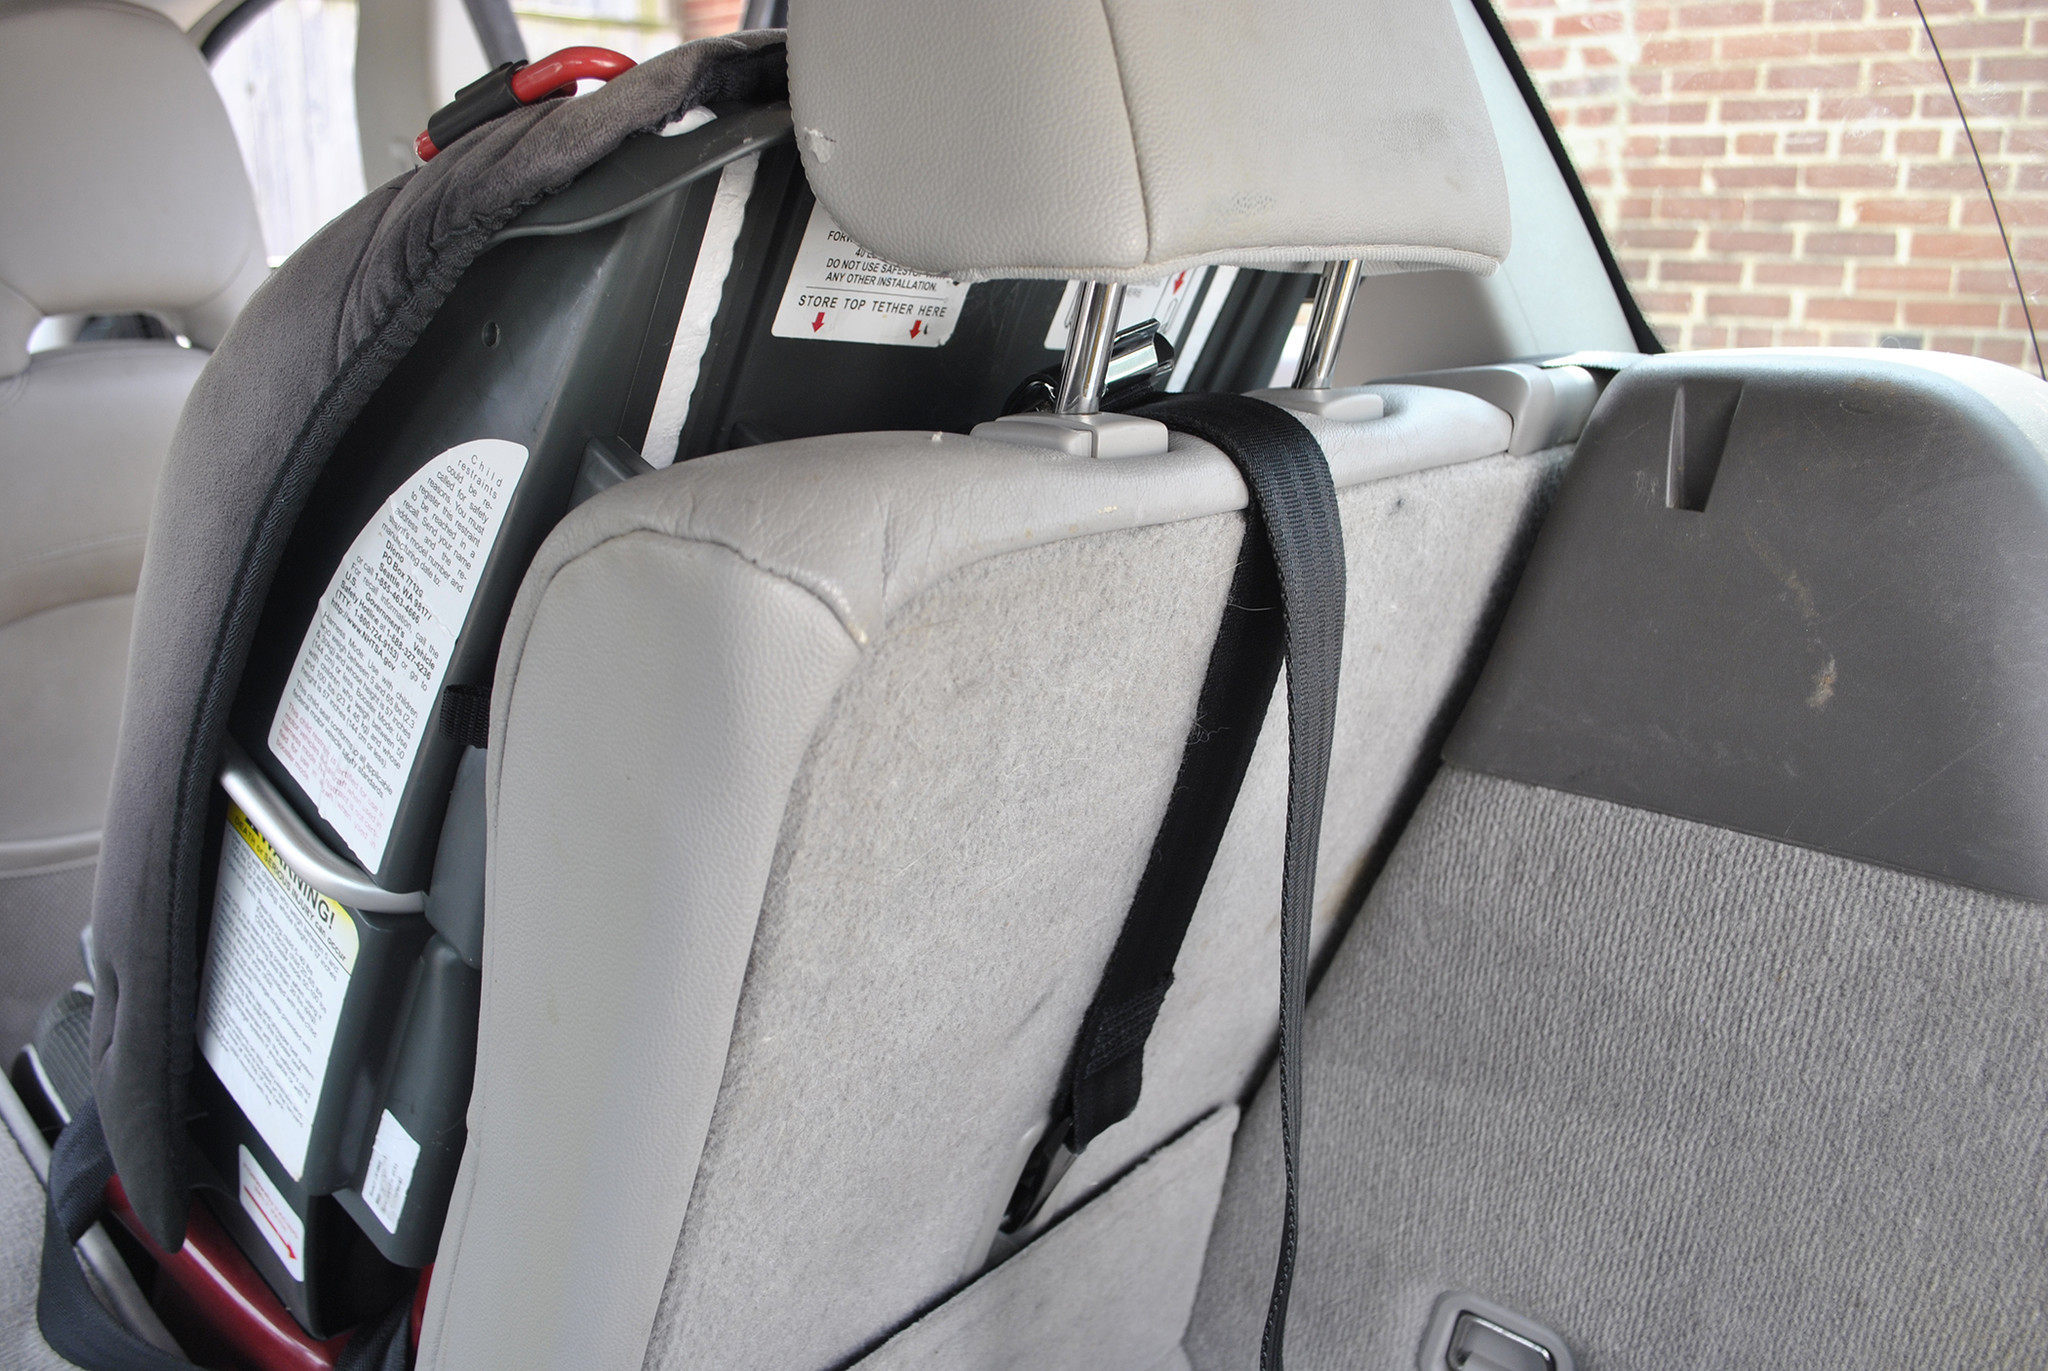 Most parents not using car seat tether: study - Chicago Tribune